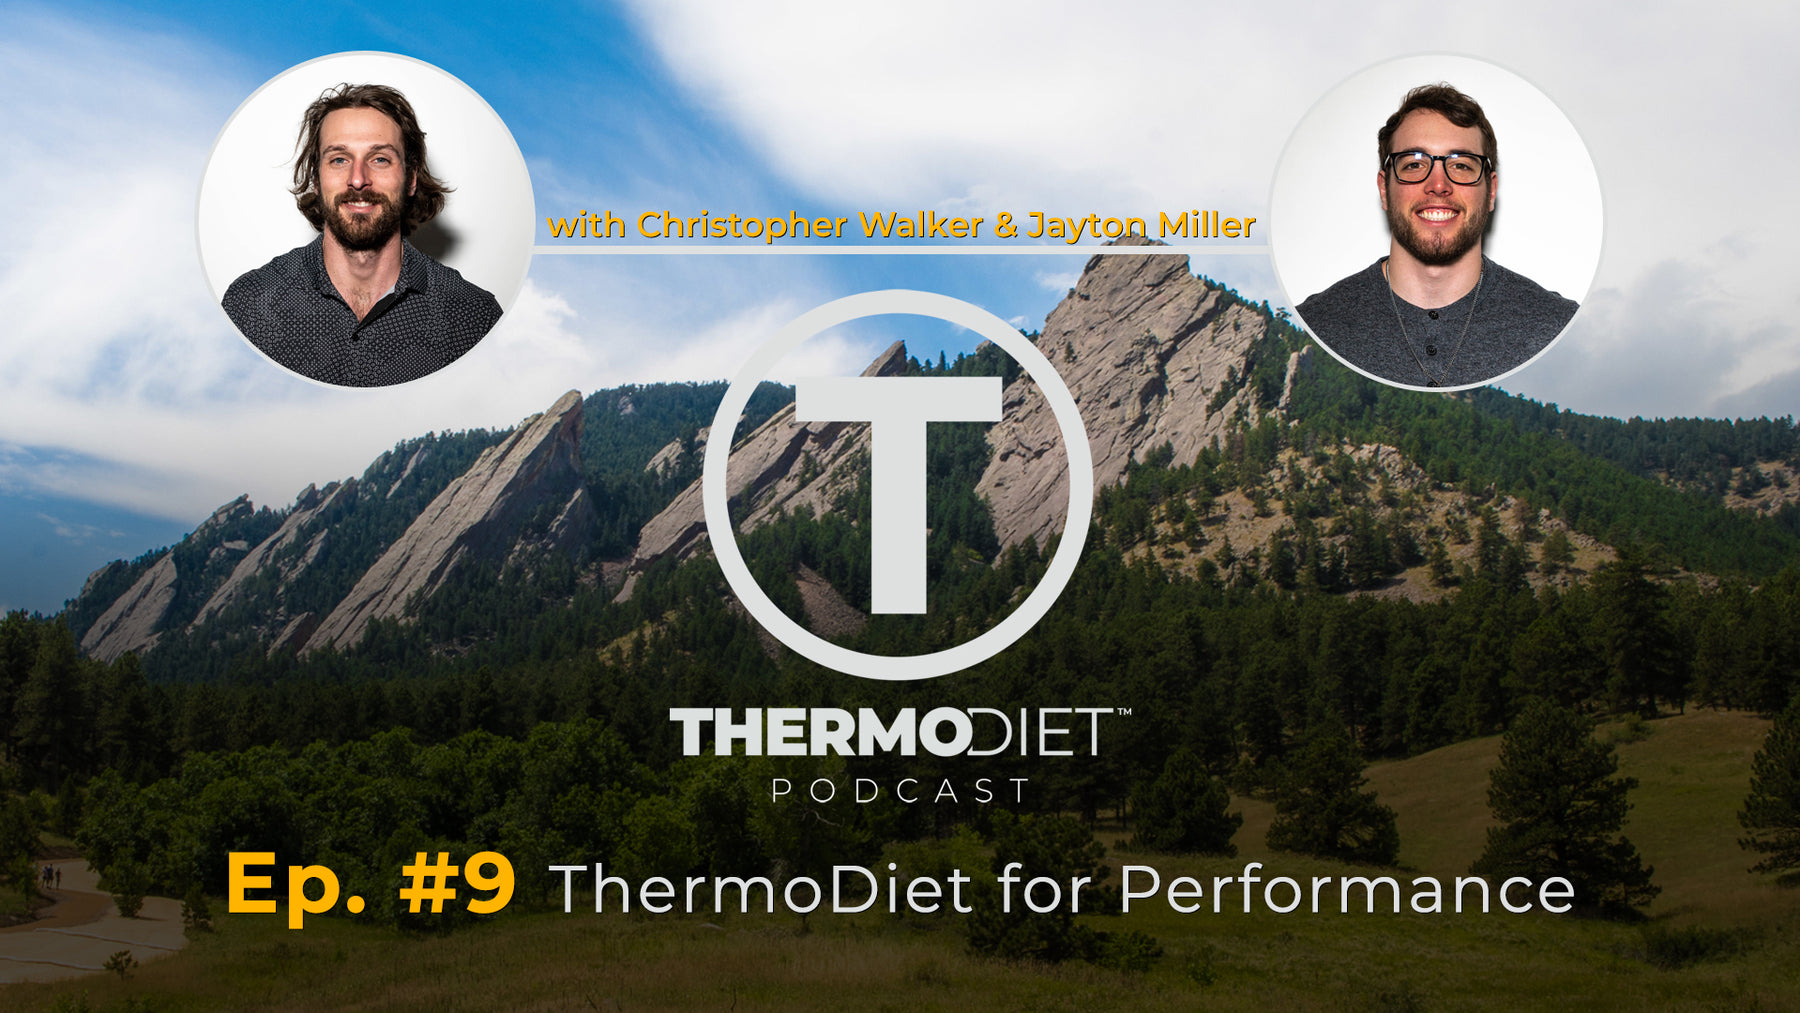 Thermo Diet Podcast Episode 9 - Thermo Diet For Performance